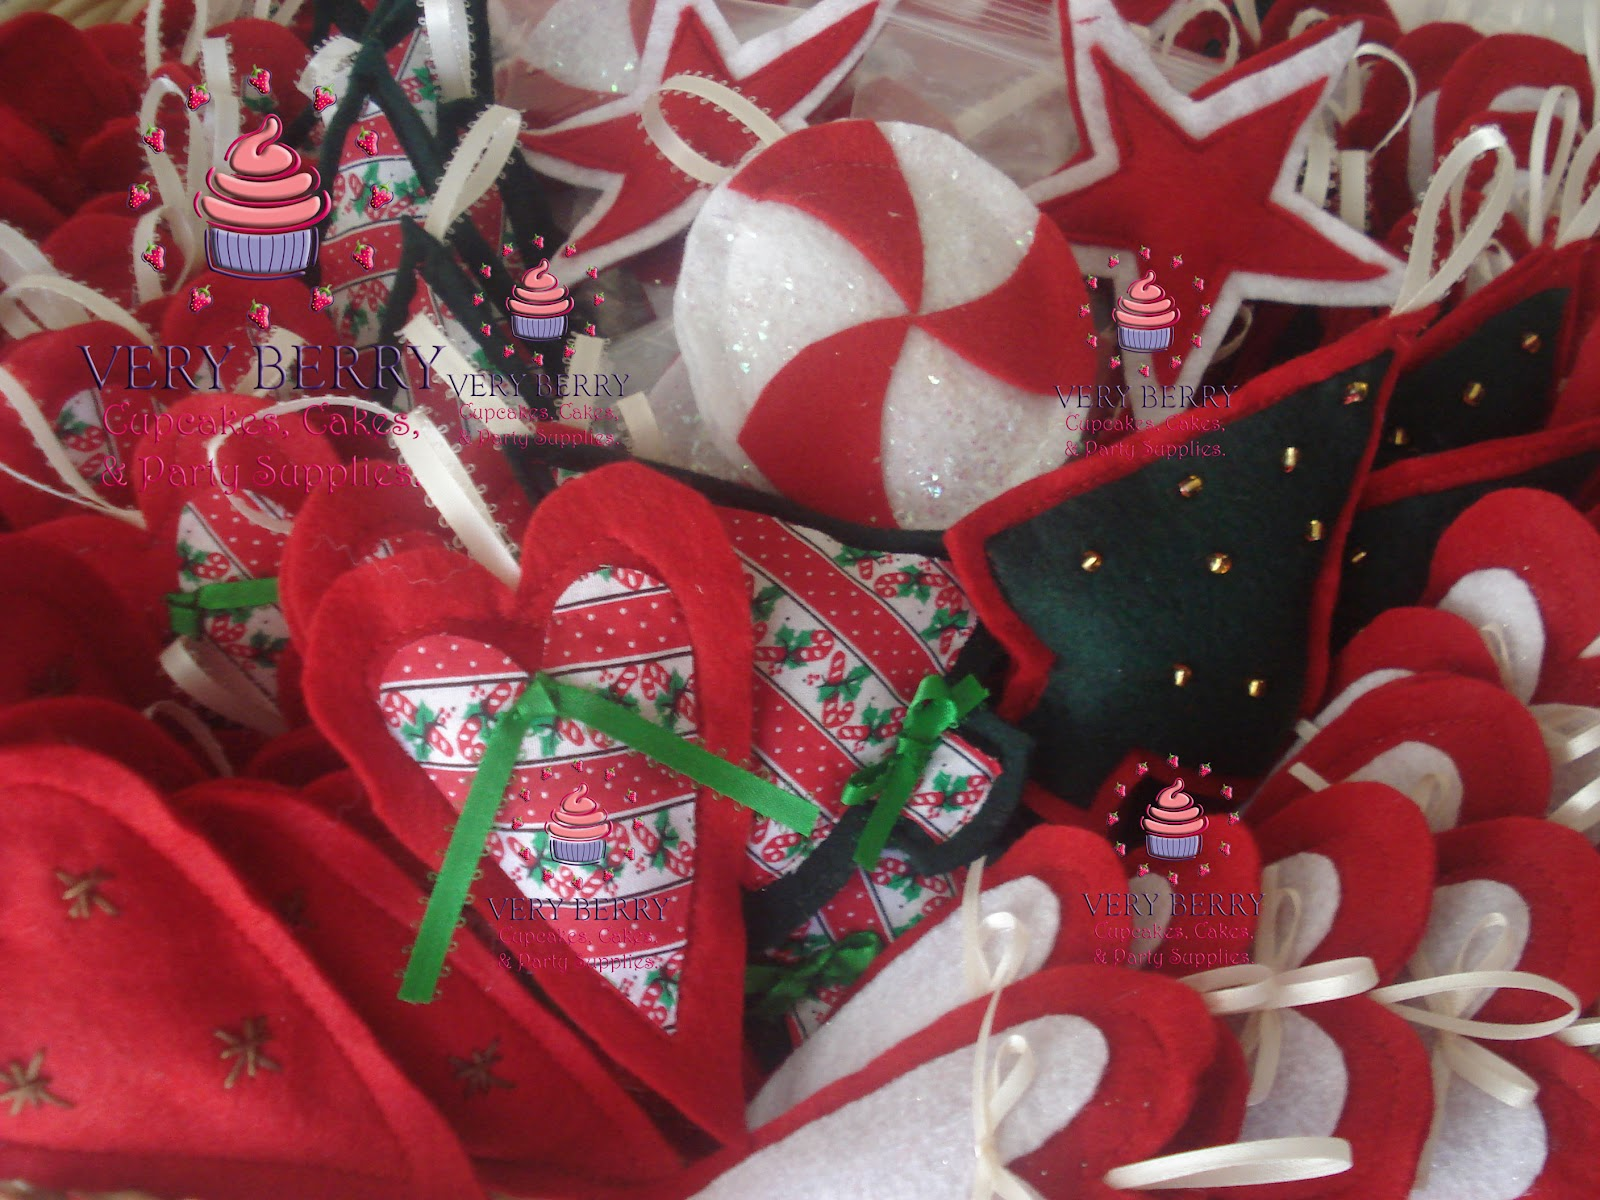 Veryberry Cupcakes Christmas Fabric Ornaments